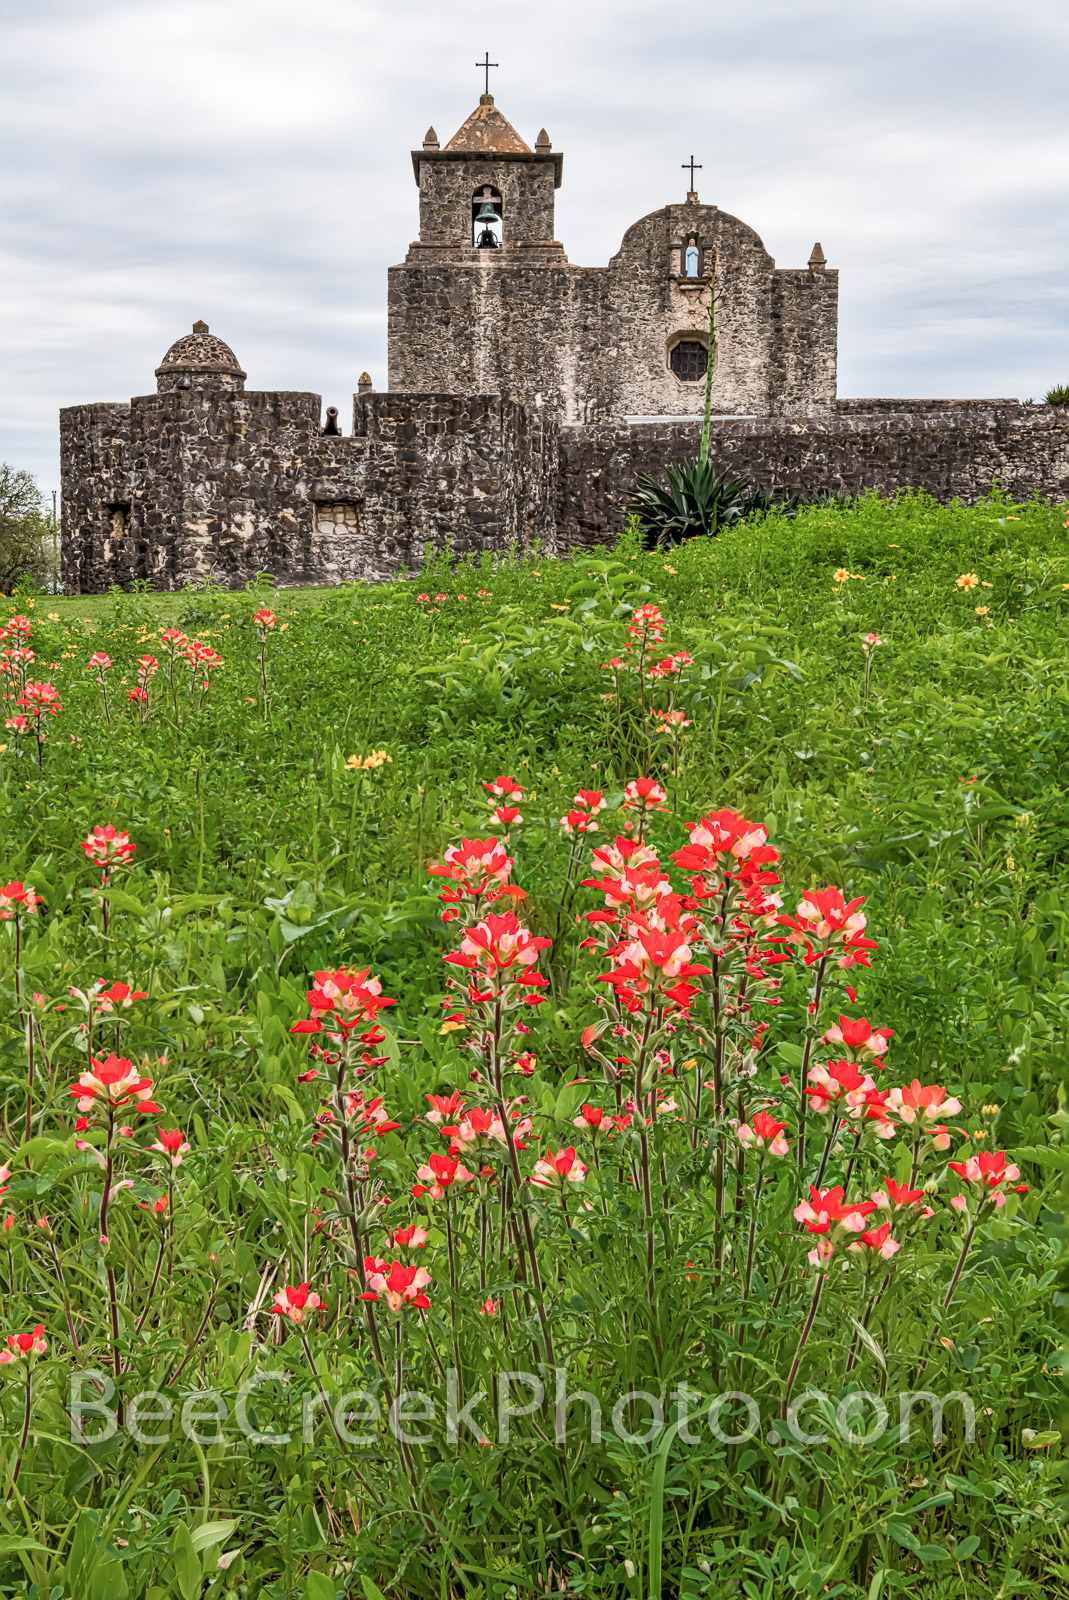 Presidio Goliad Tall - Another view of the Presidio Goliad or Presidio La Bahí in Goliad on a spring day with texas wildflowers...